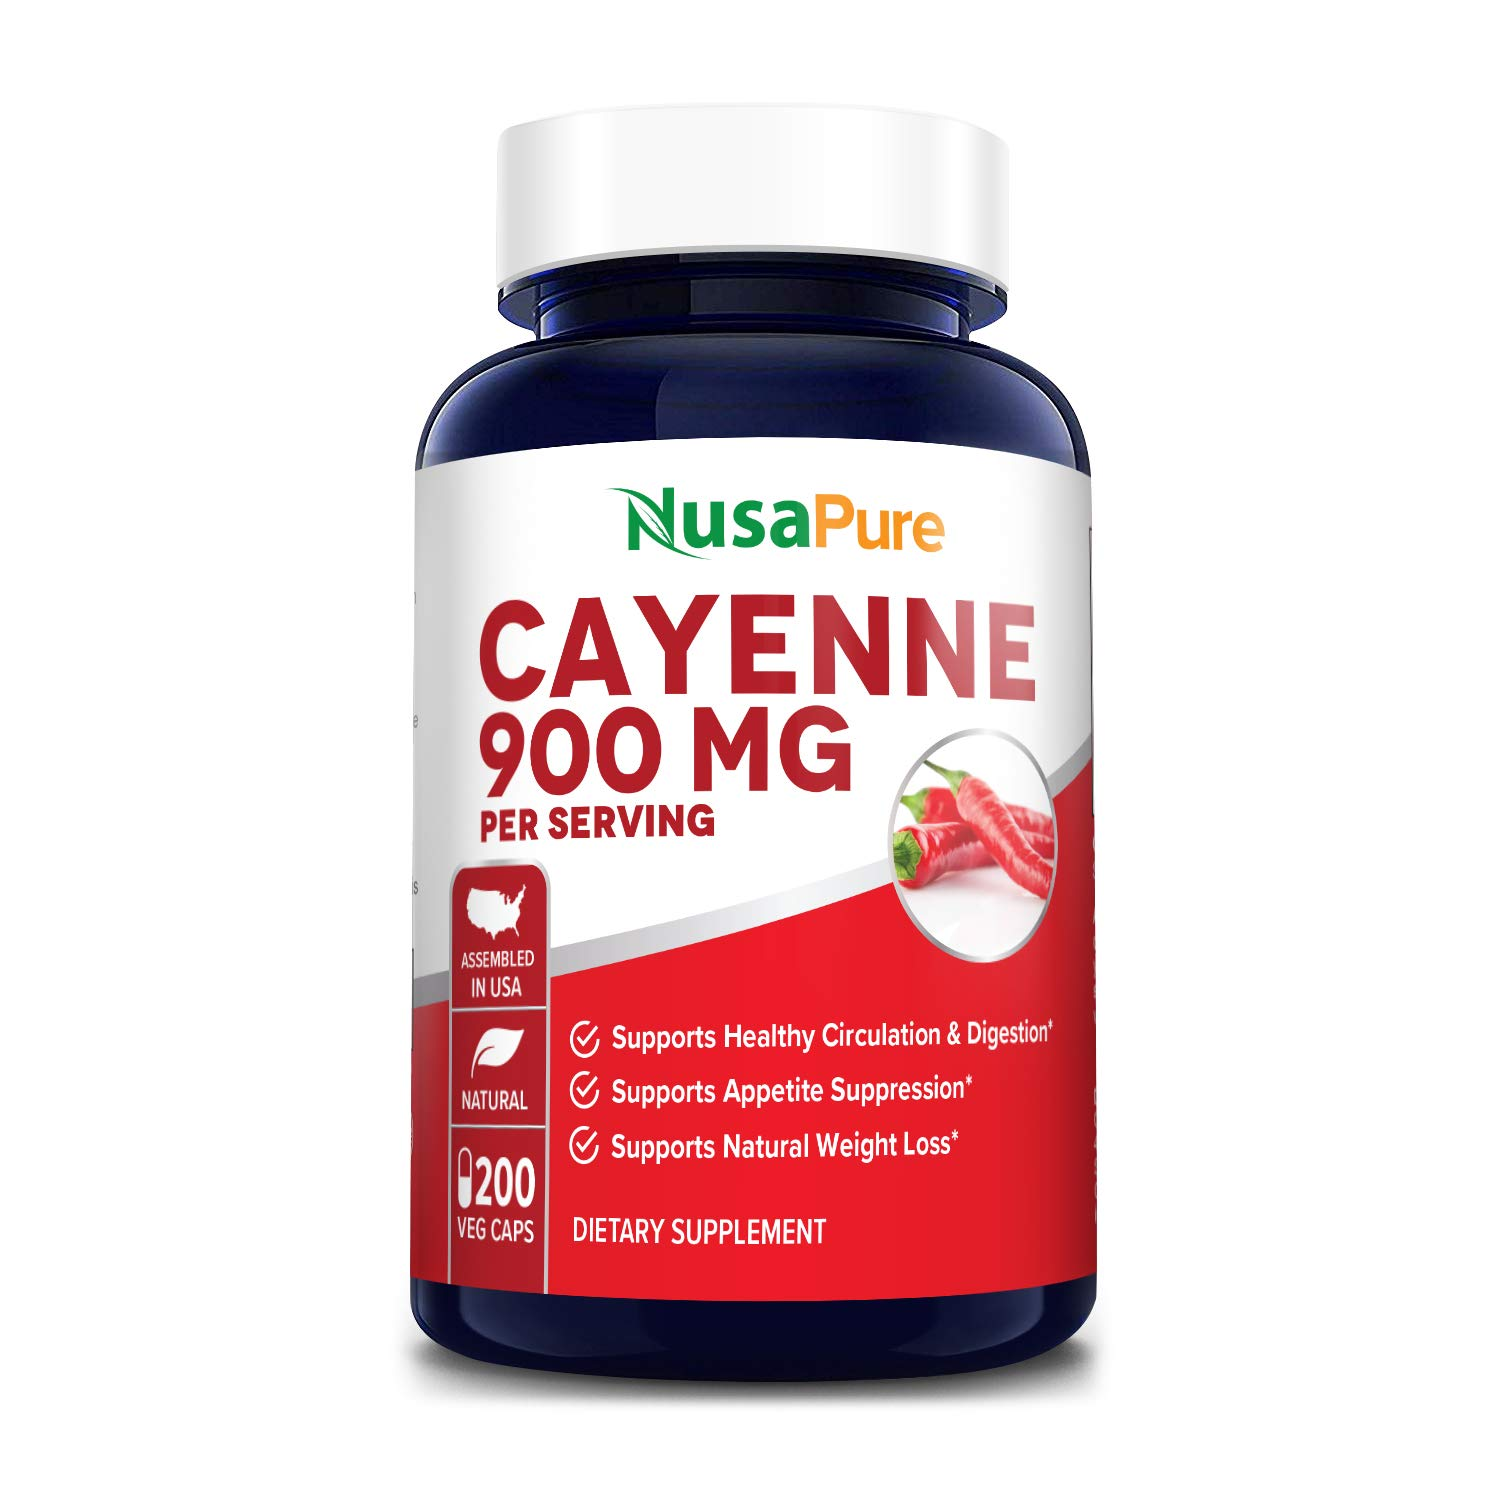 Cayenne Pepper 900mg 200 Veggie Capsules (Vegetarian, Non-GMO & Gluten-Free) - Supports Healthy Weight and Healthy Digestion*. Supports Circulation & Healthy Appetite*